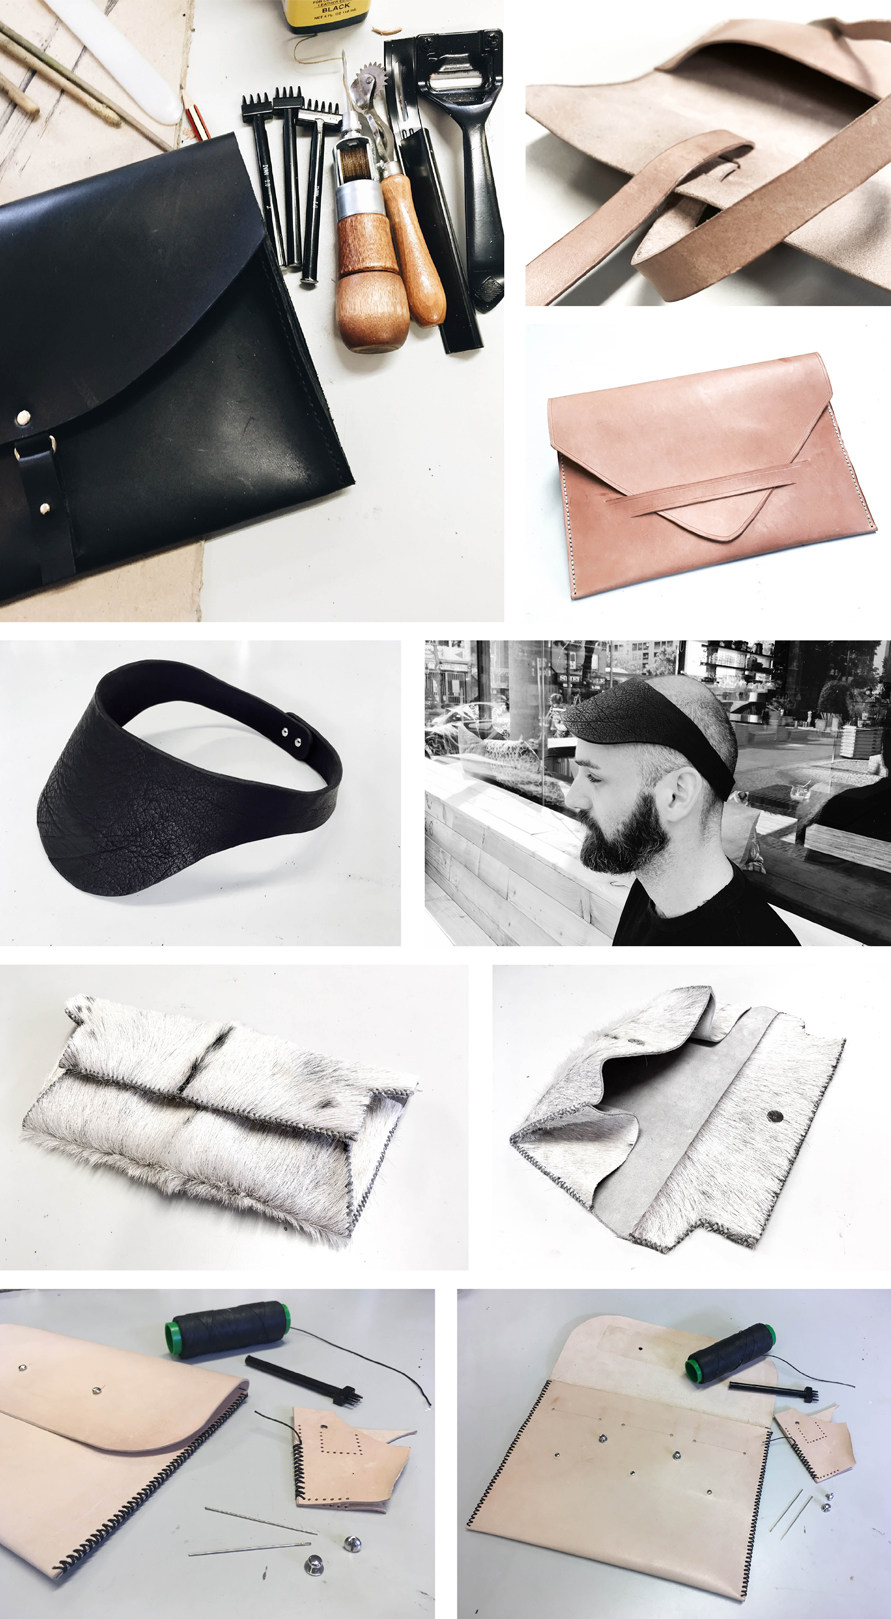 workshop-leather-leather workshop-leder-lederkurs-kurs-berlin-handwerk-handmade-craft-accesorries-leather products-leder produkte